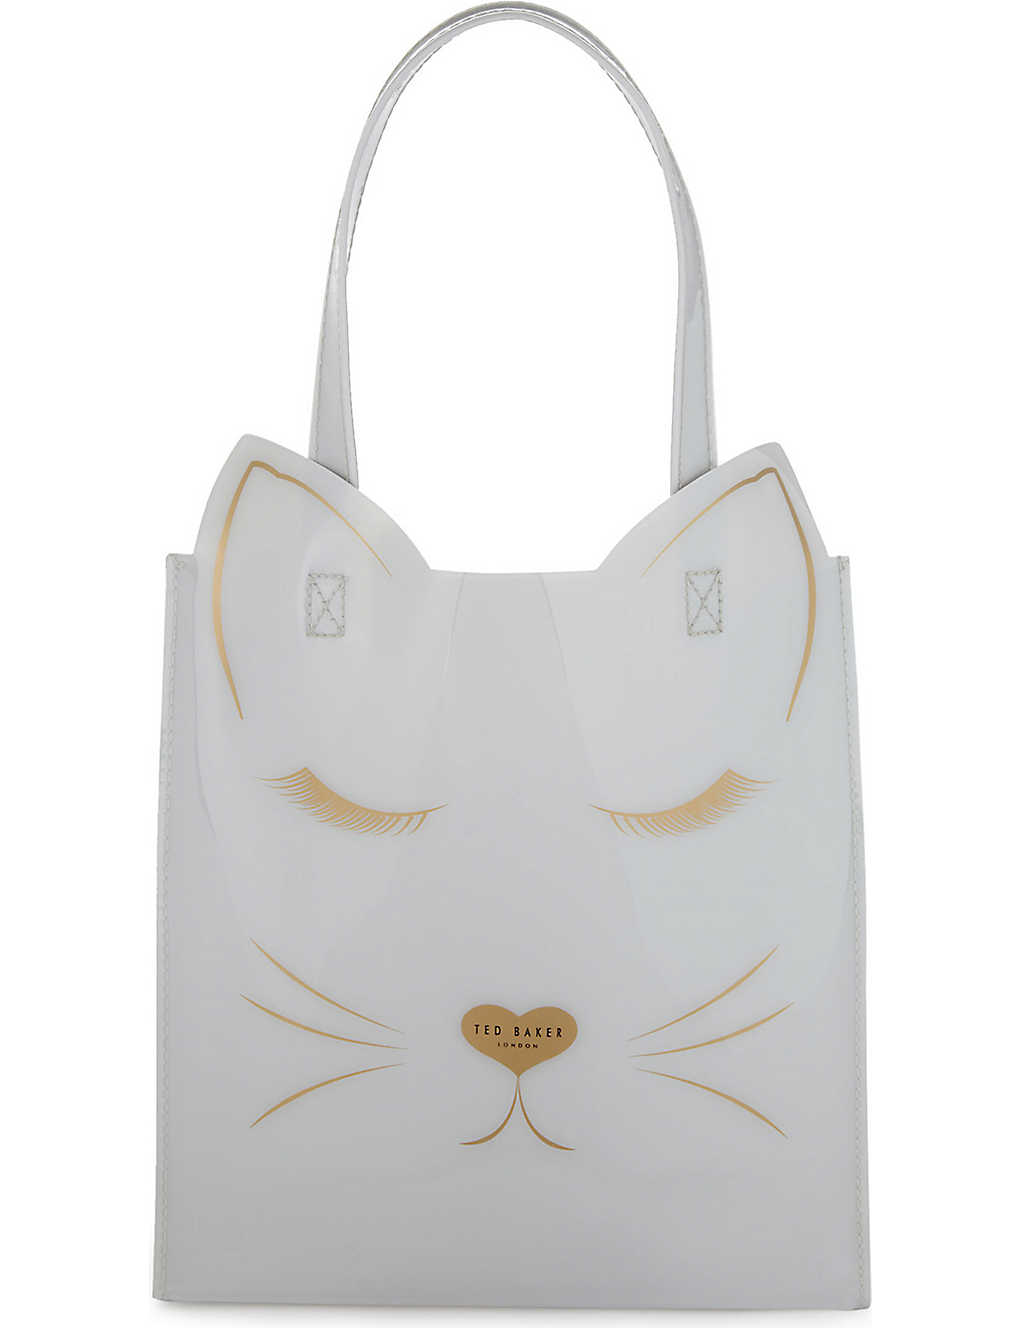 3c2b32691db1 TED BAKER - Kitcon cat icon tote